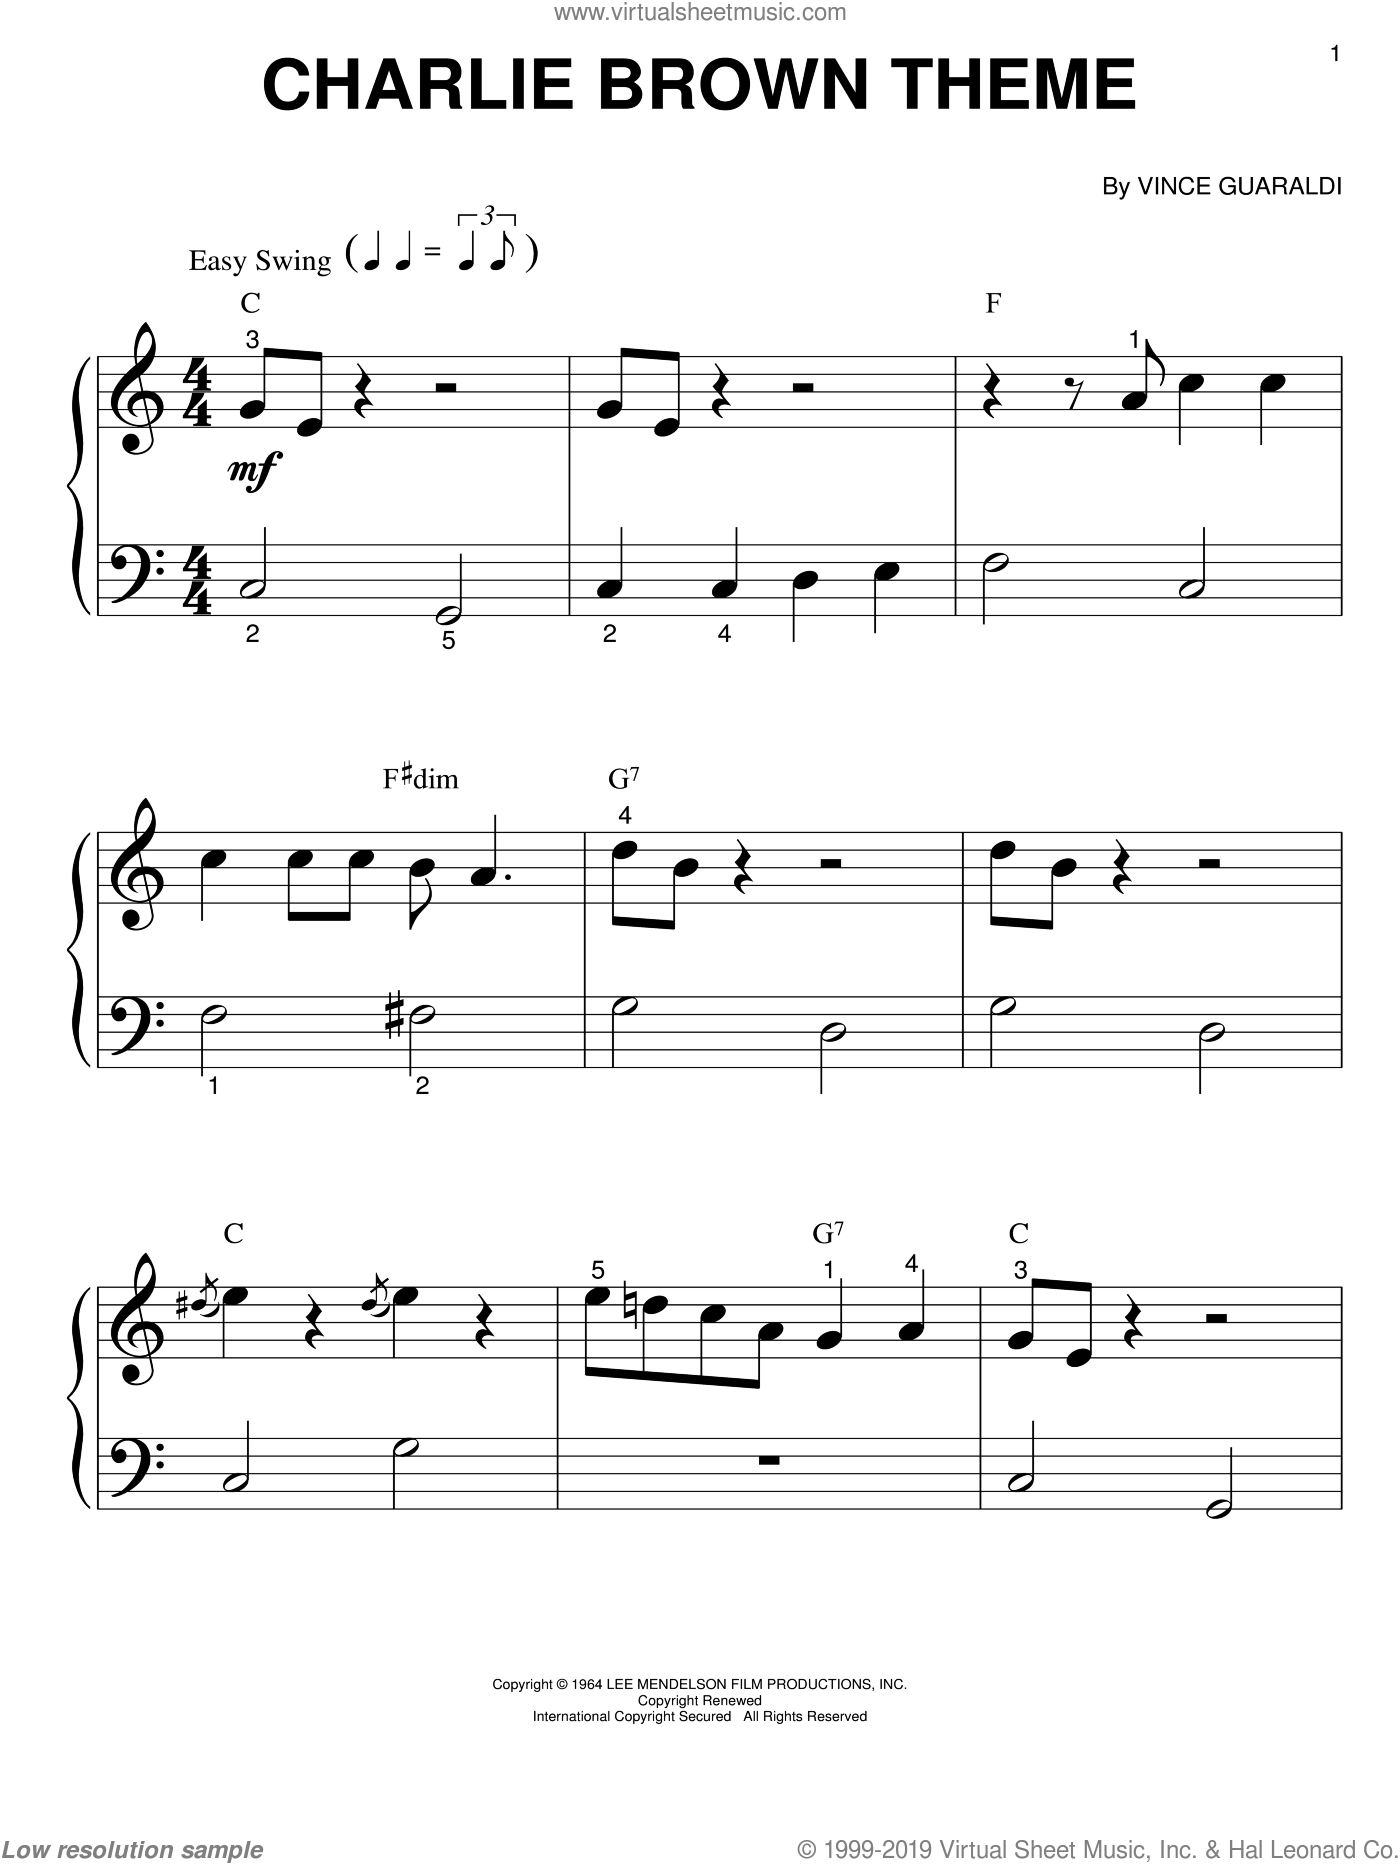 Charlie brown christmas easy piano sheet music free charlie brown